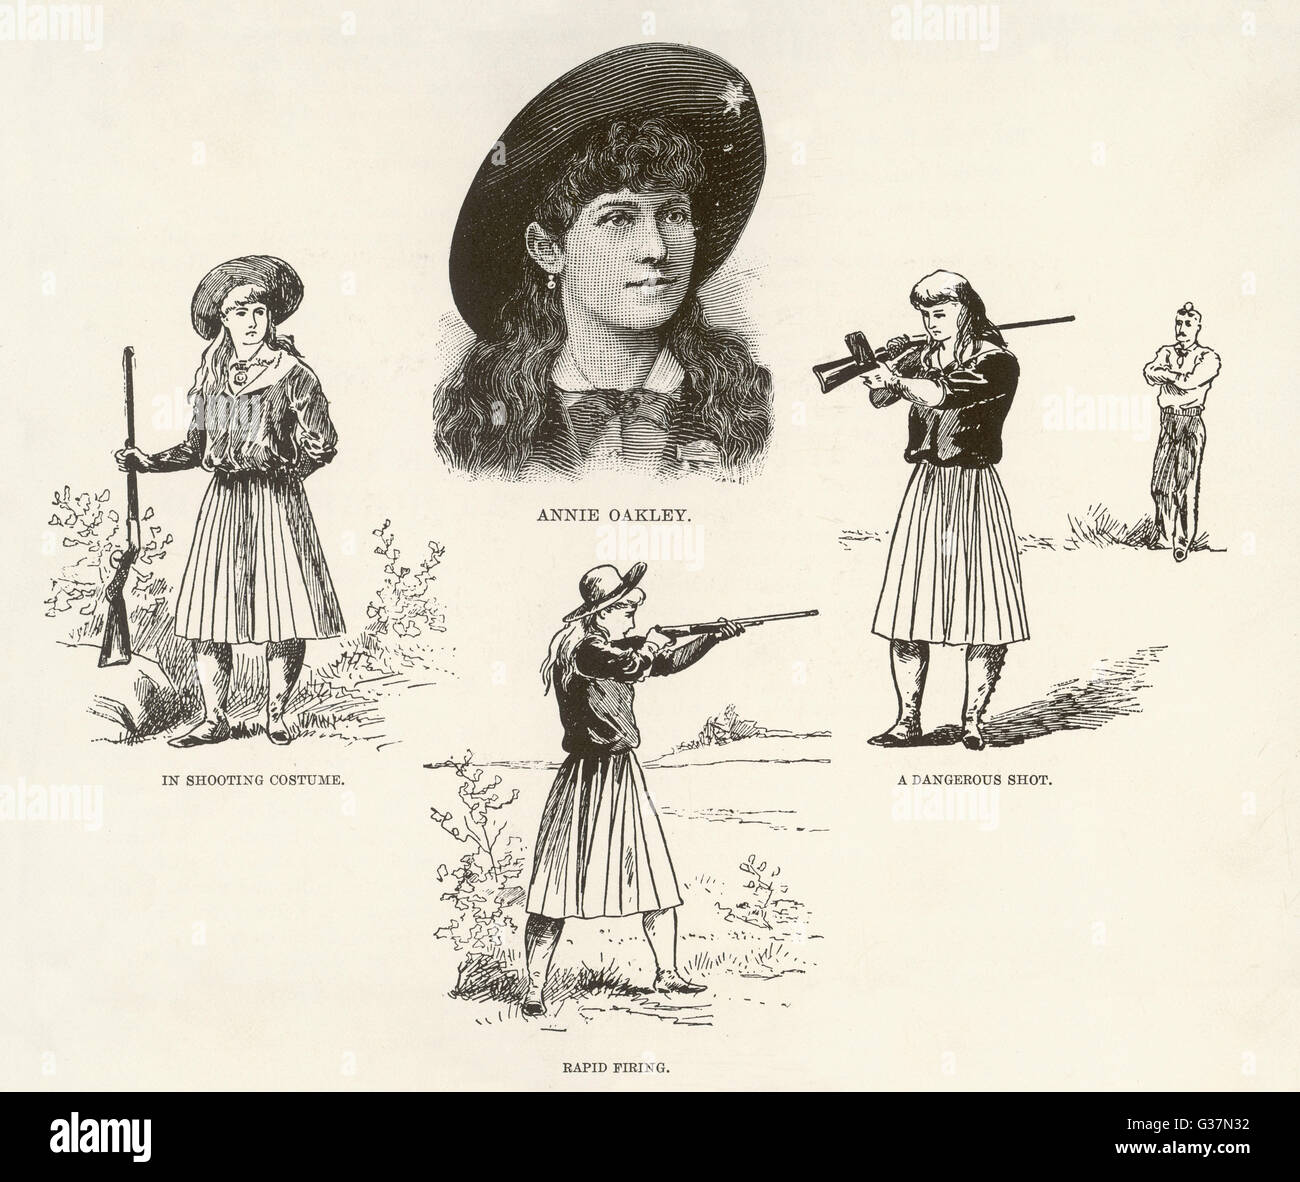 ANNIE OAKLEY entertains with feats of skillful marksmanship       Date: 1892 - Stock Image